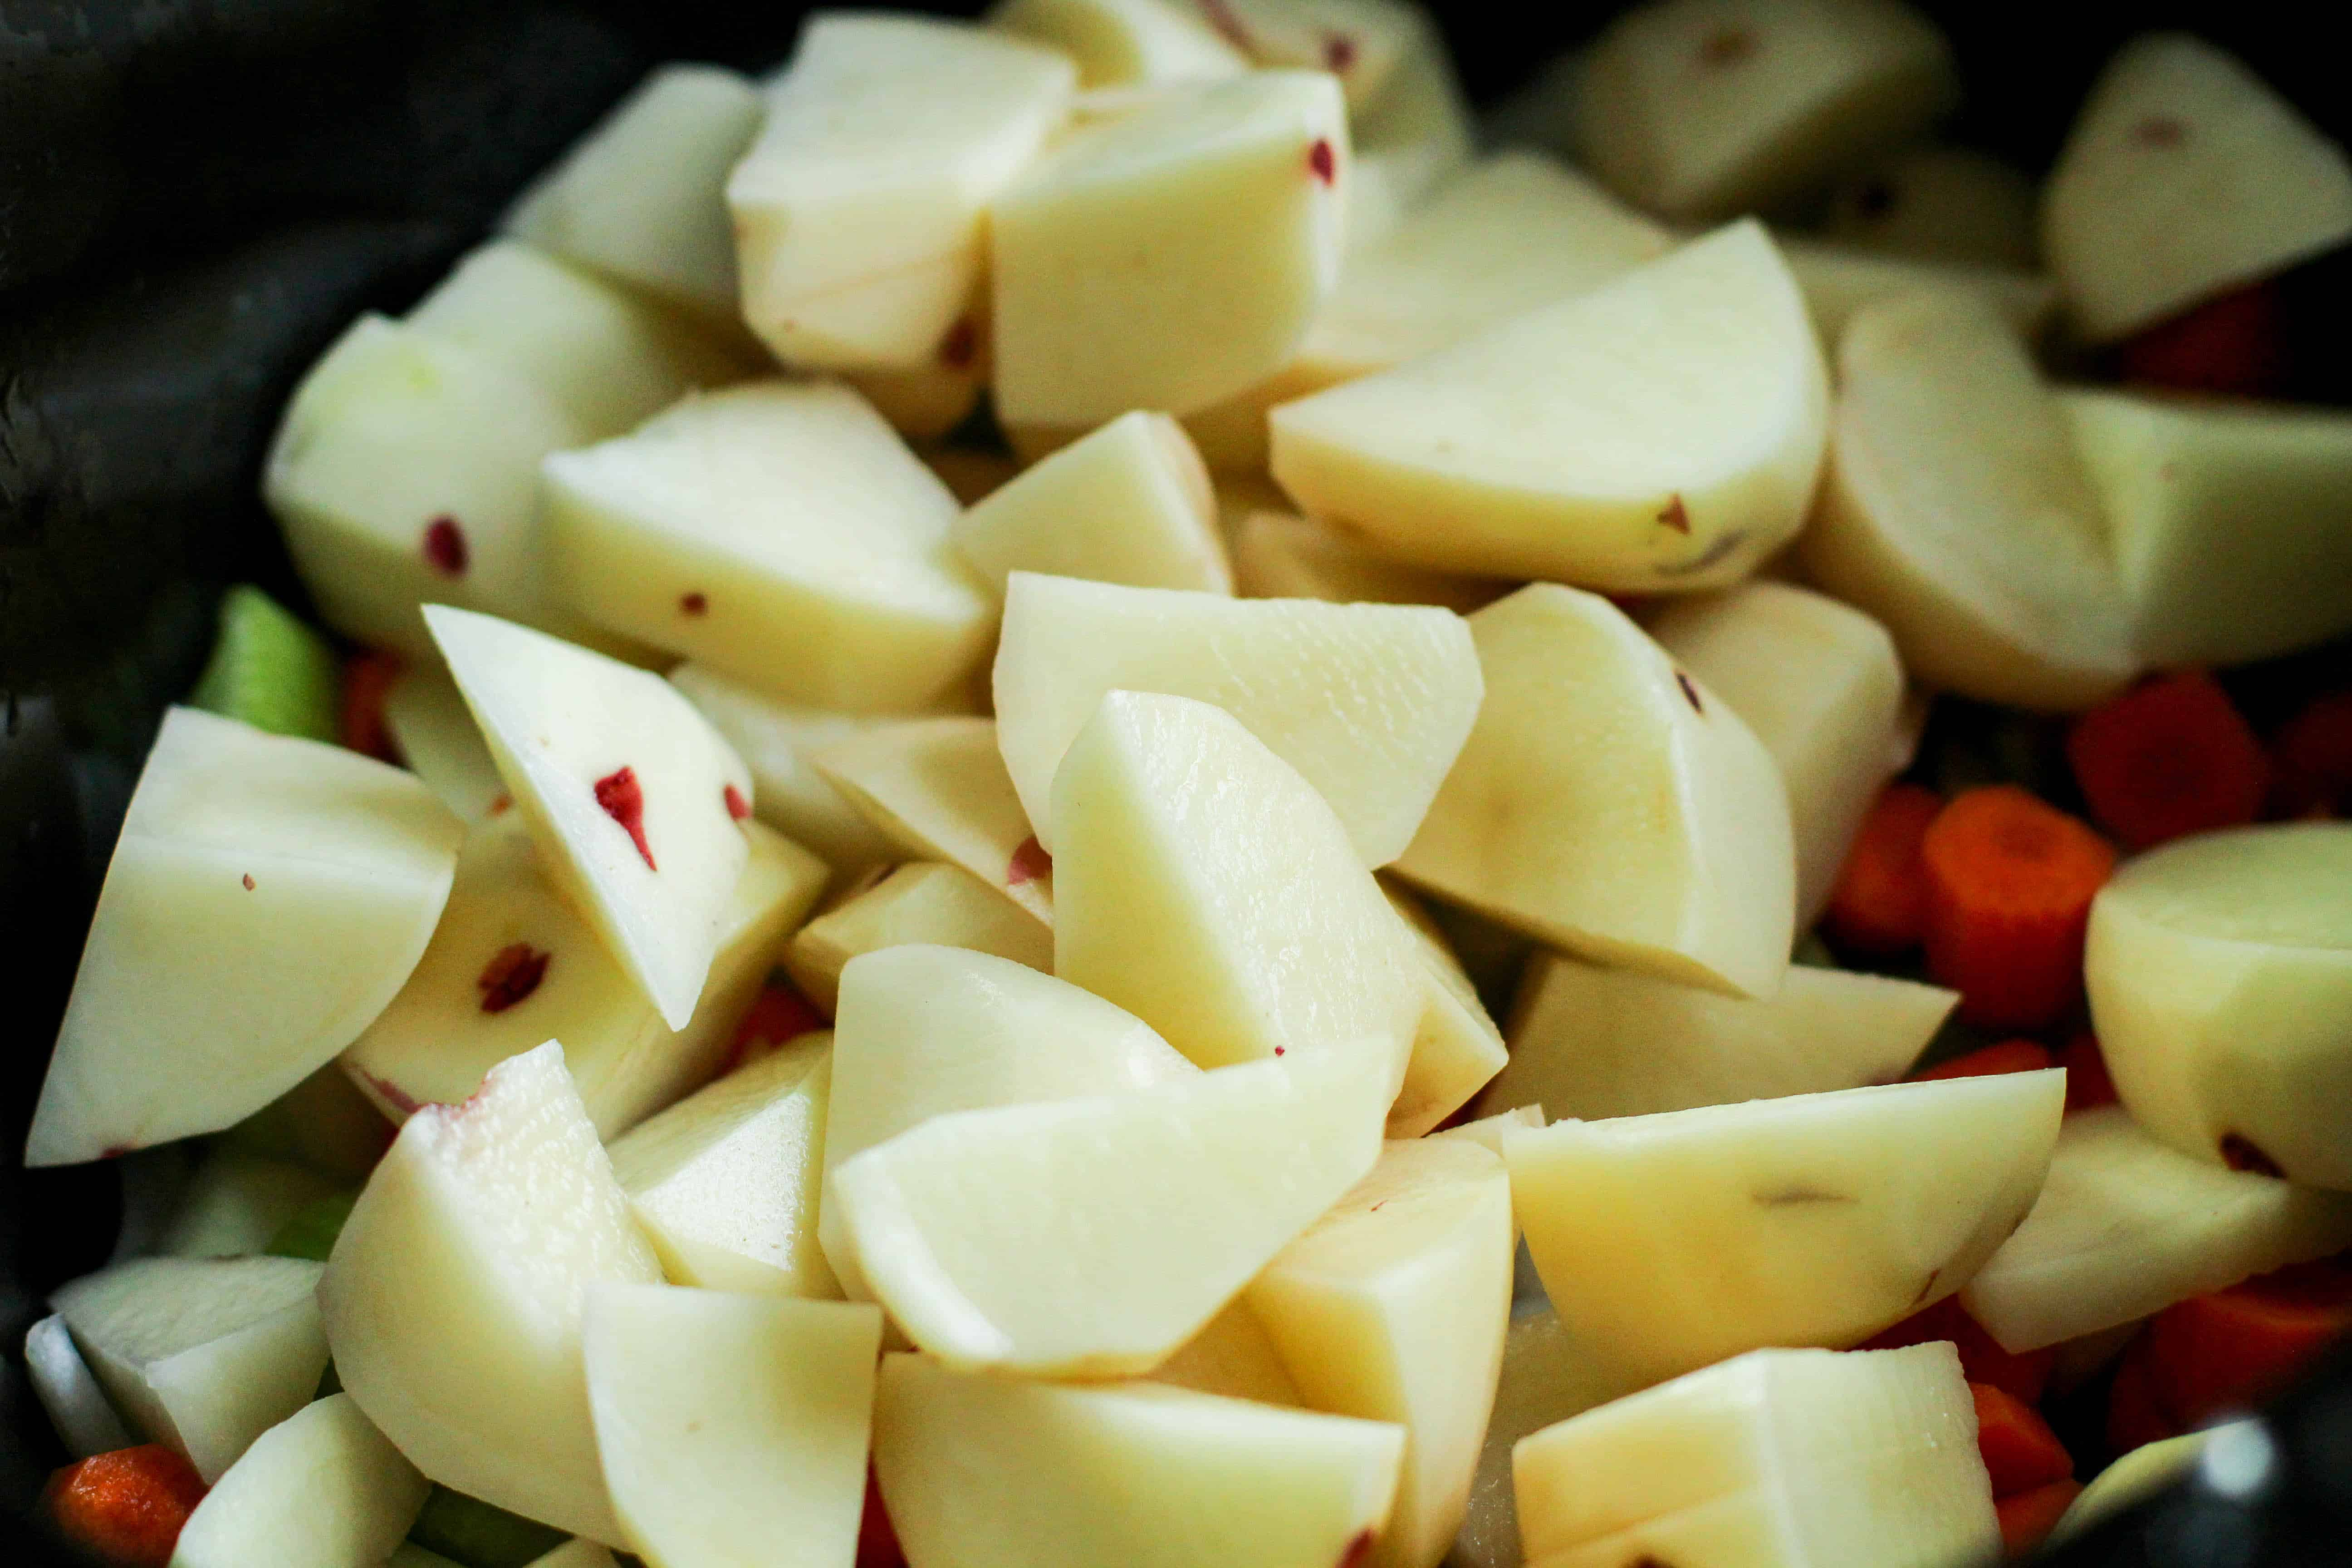 peeled potatoes in a bowl